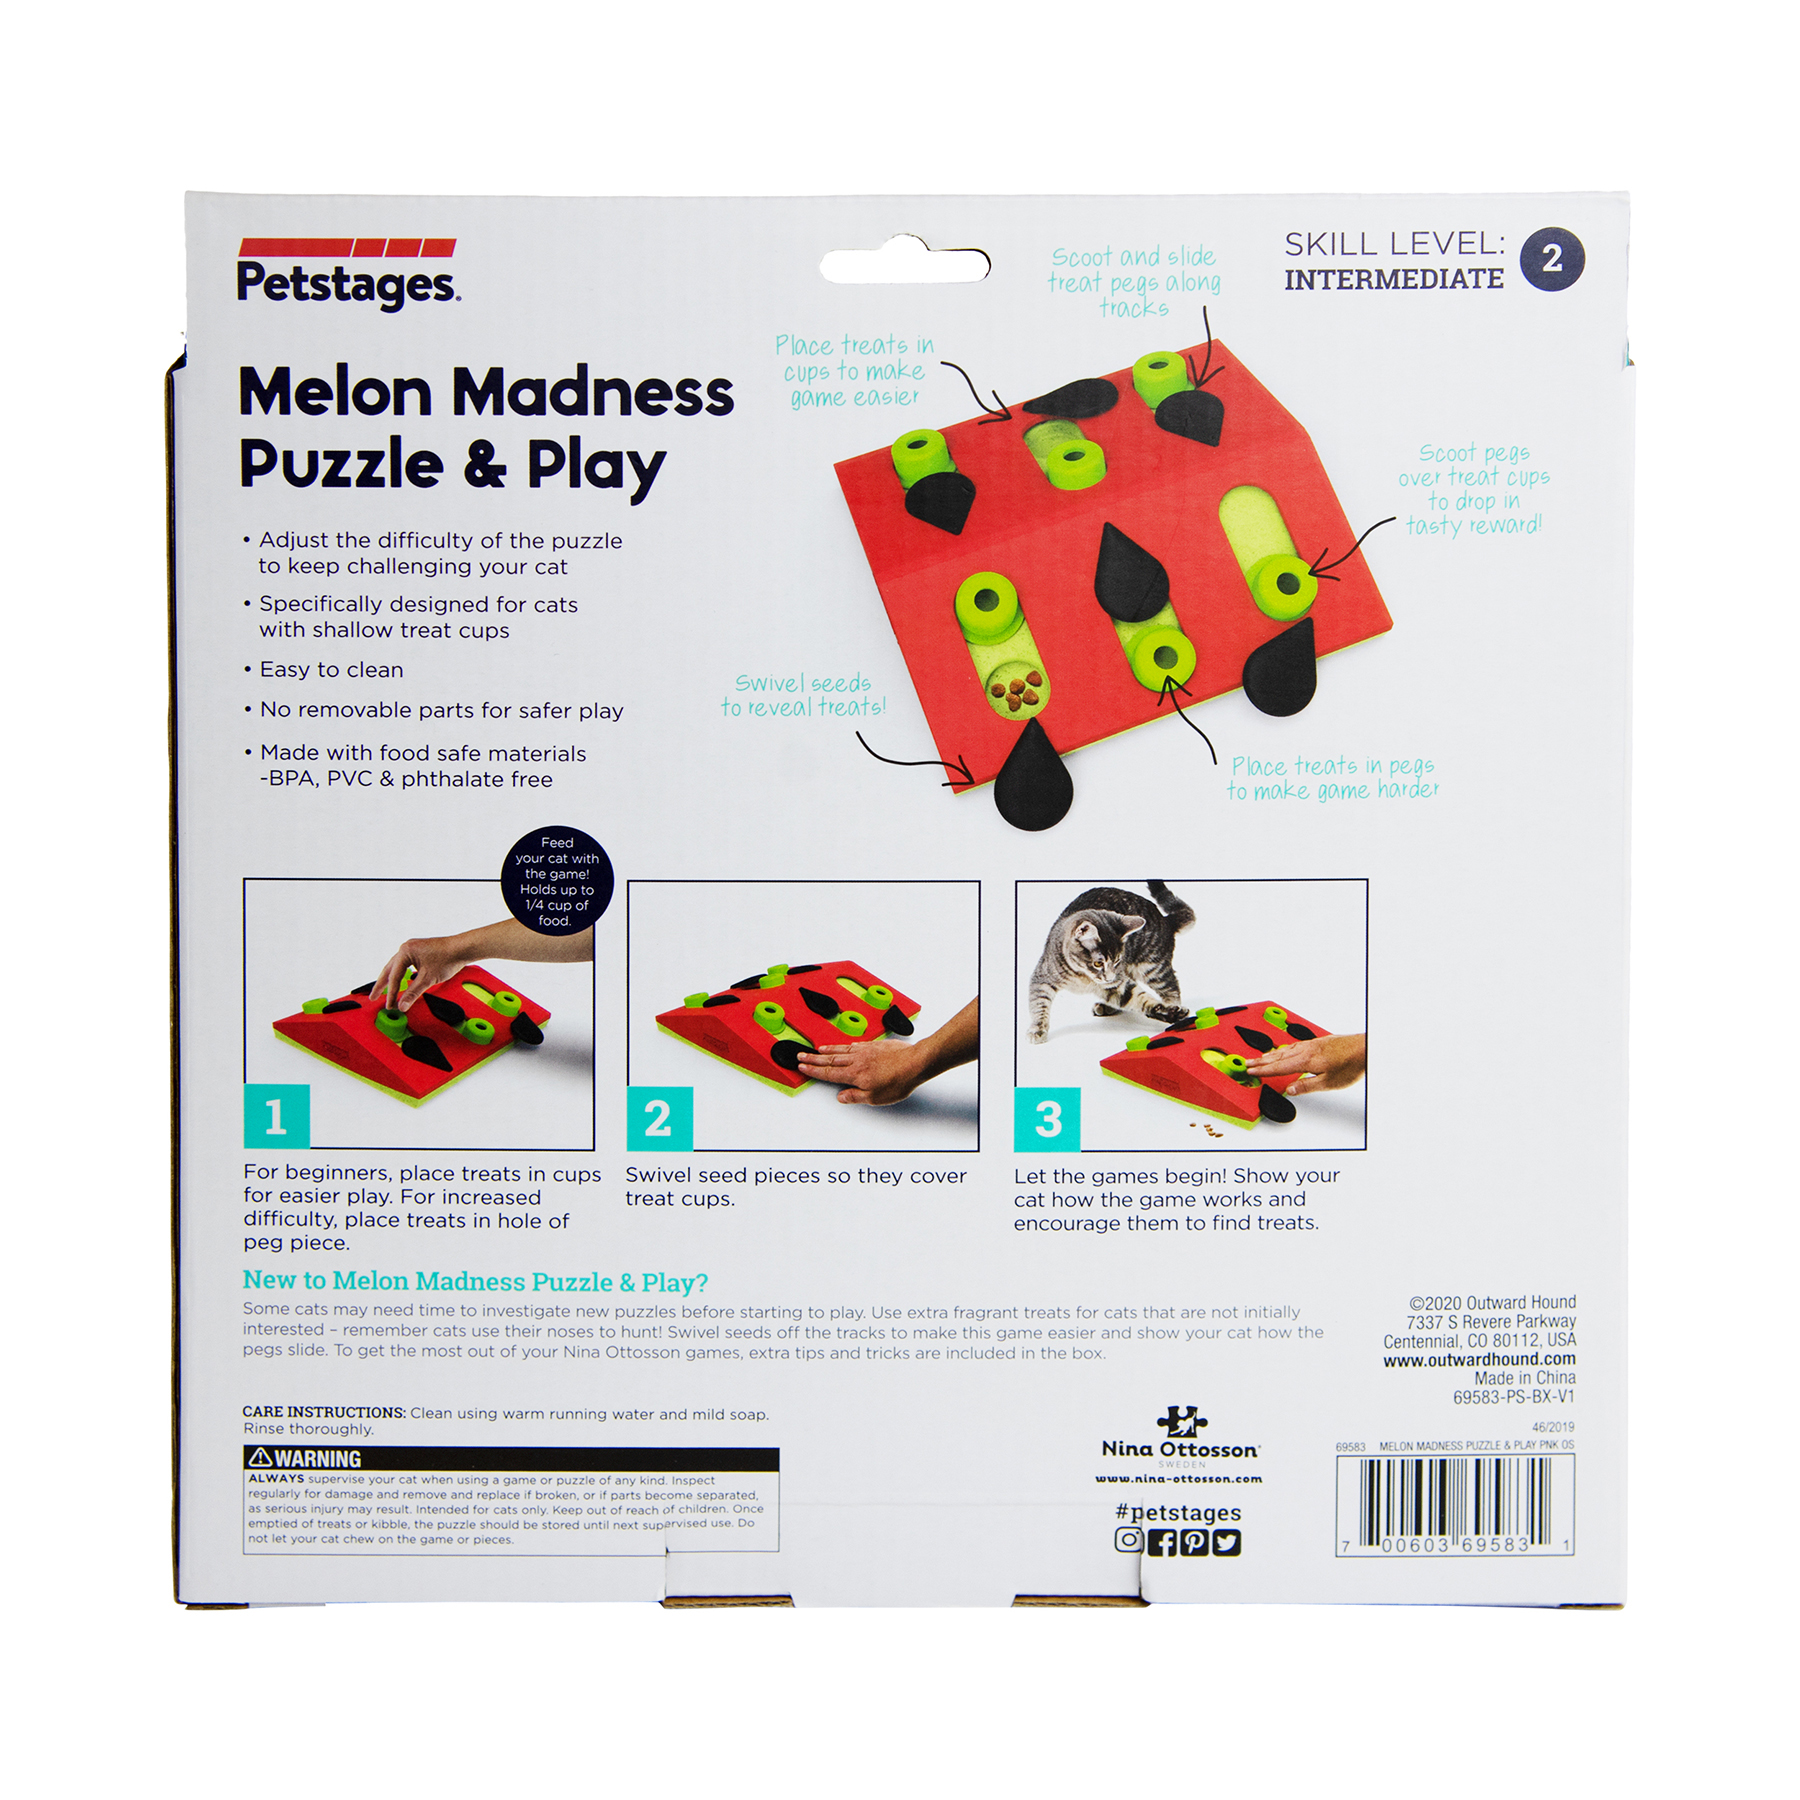 69583 Petstages NinaOttosson PuzzleAndPlay MelonMadness Pnk SHOT1